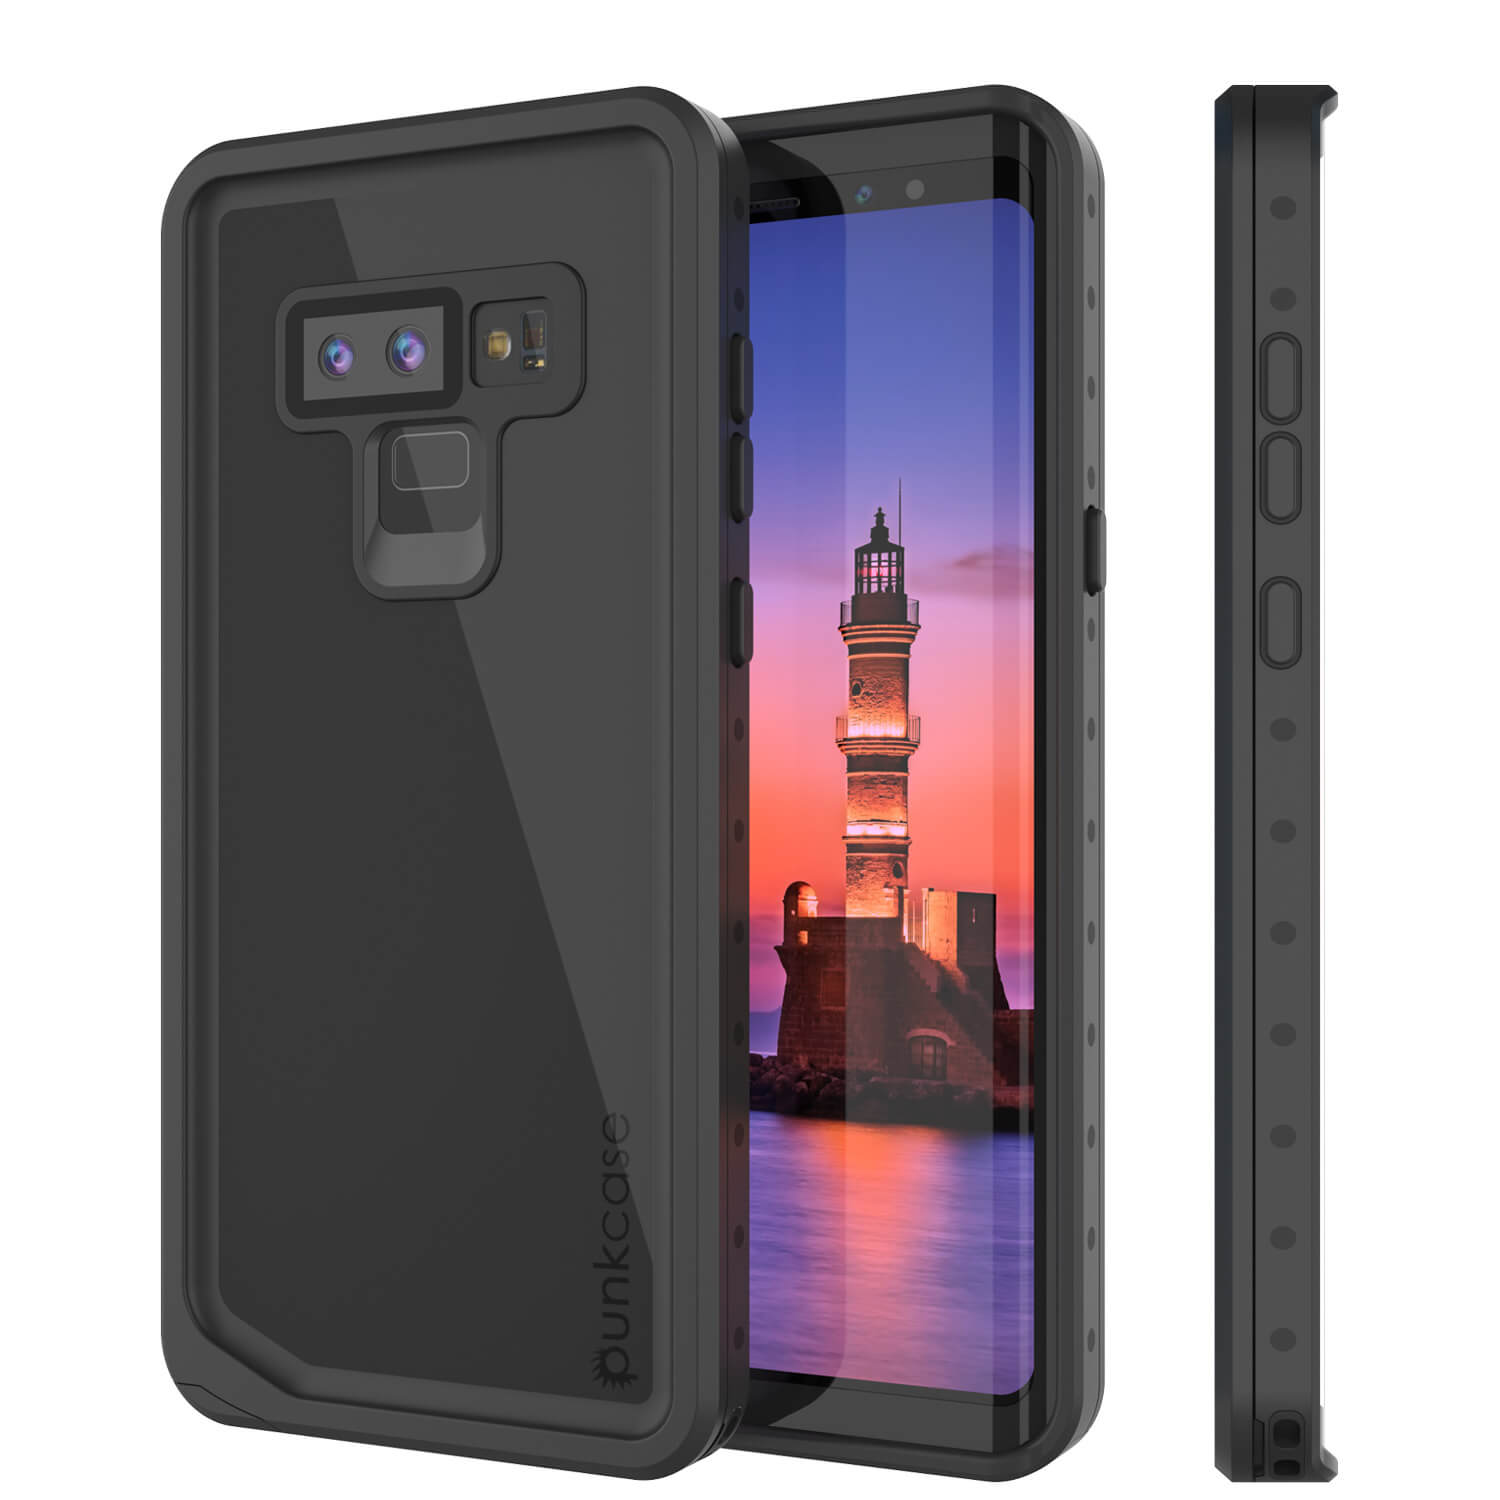 Galaxy Note 9 Waterproof Case, Punkcase Studstar Black Thin Armor Cover